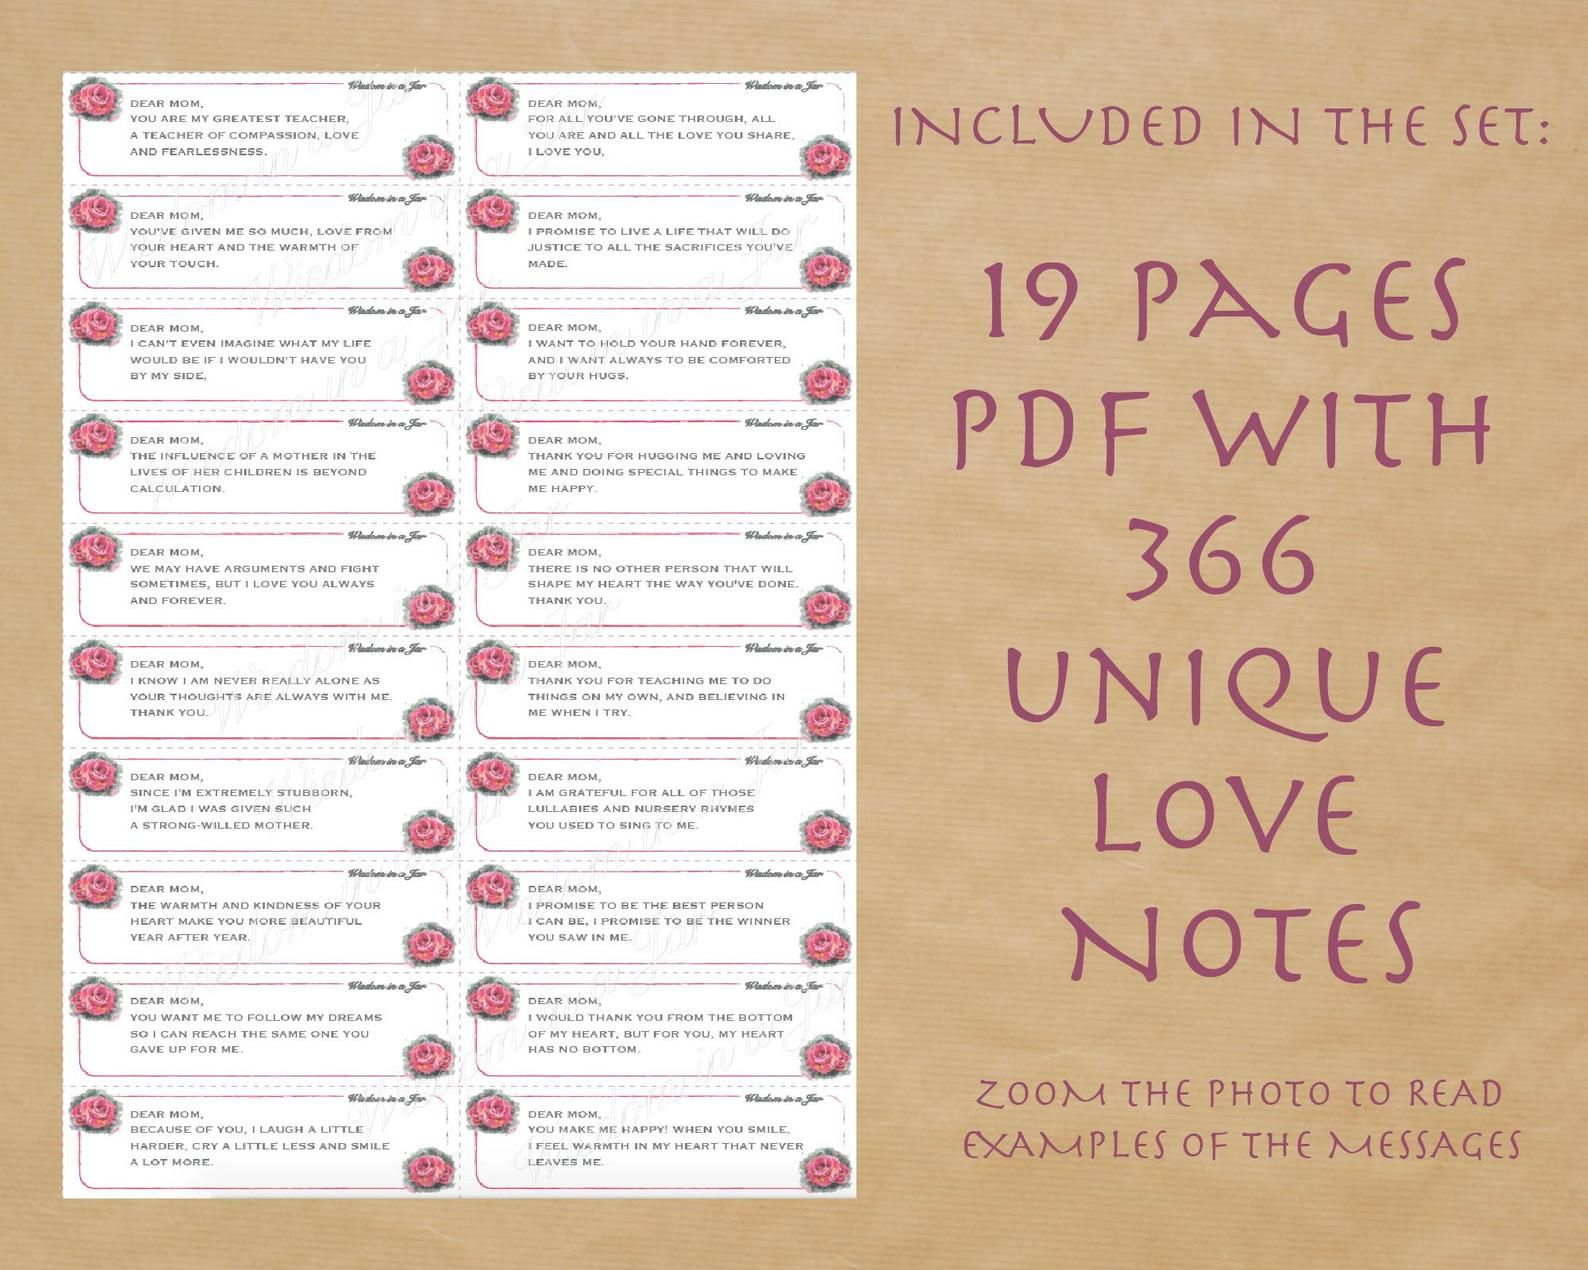 Printable Love Notes To My Mom 365 Messages Quotes Cards Jar Labels Editable Pdf Love Notes Birthday Mothers Day Diy Gift Thank You Love Notes 365 Note Jar Diy Mothers Day Gifts